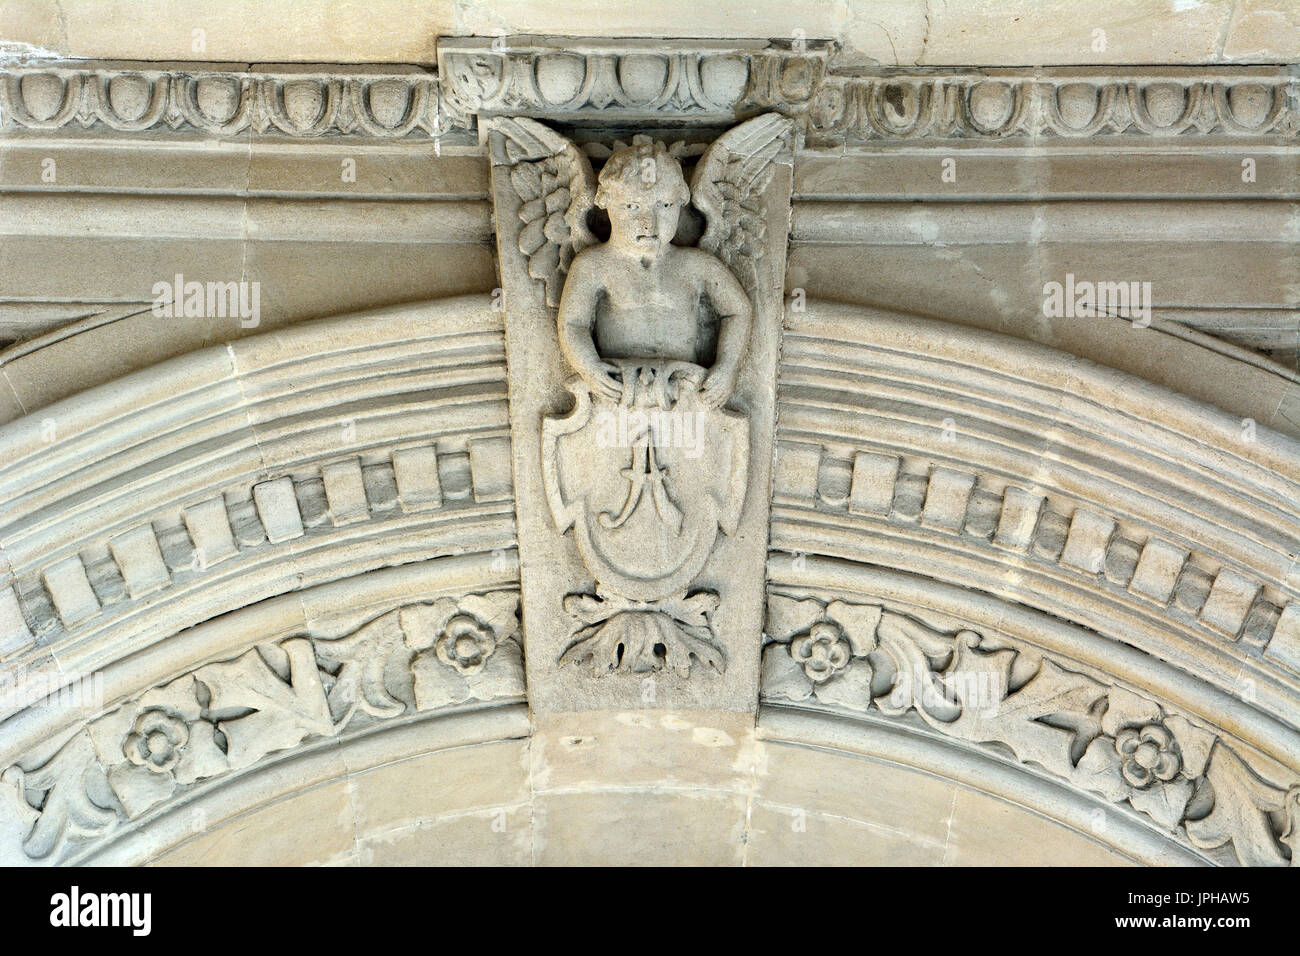 Sculpture of angel boy on on facade of architectural building in downtown Baku. - Stock Image